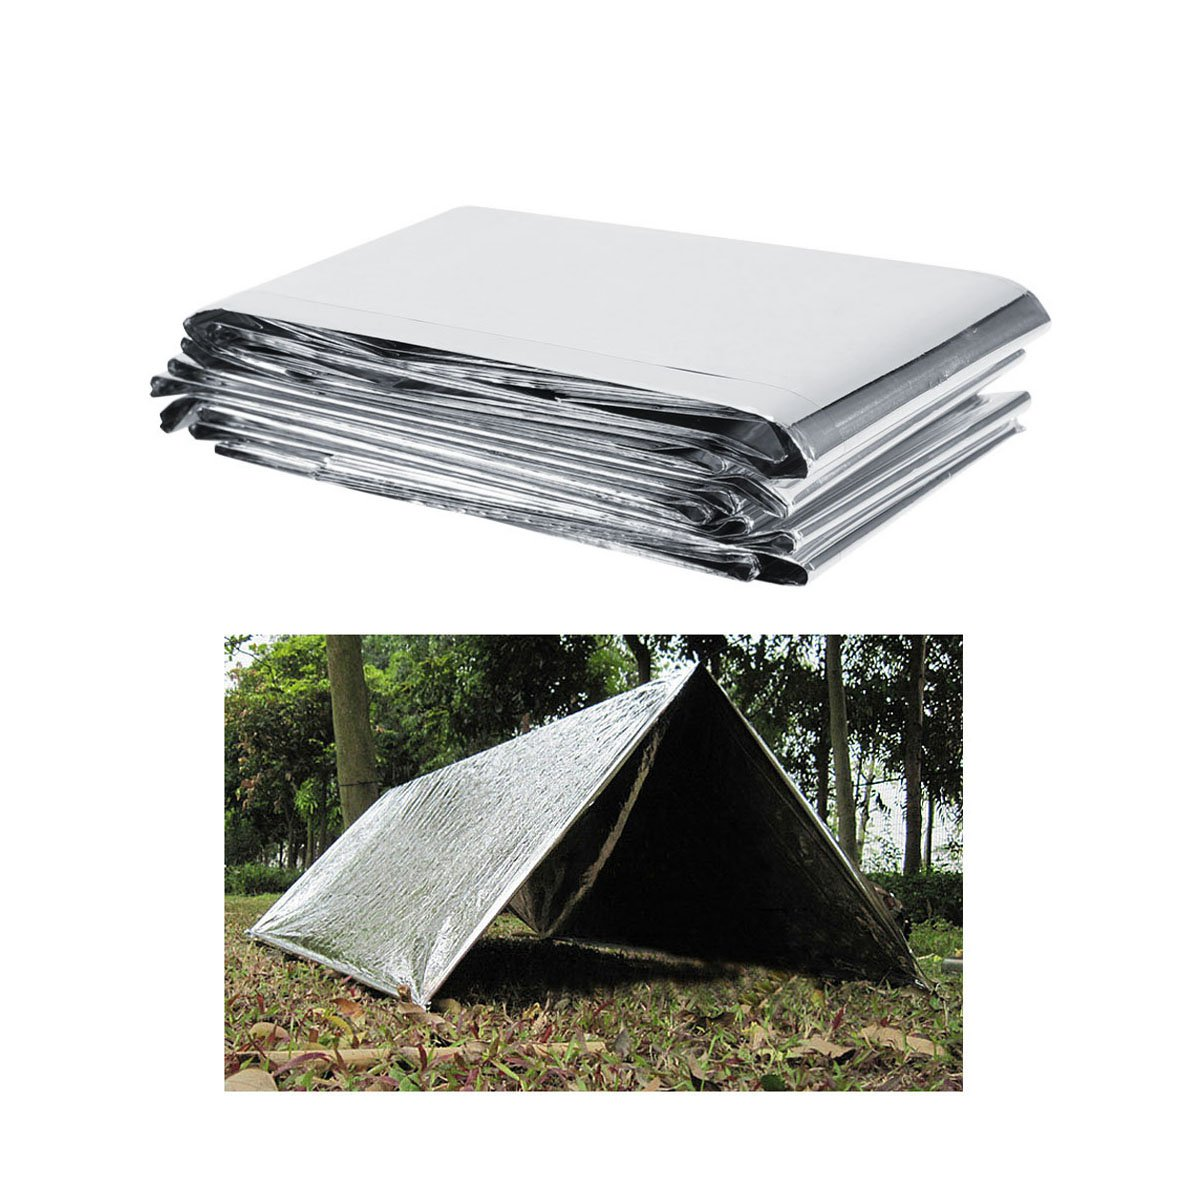 iiniim Silver Plant Reflective Film, 84 x 56 Inch Garden Greenhouse Covering Foil Sheets Effectively Increase Plants Growth YD-10052154-UK